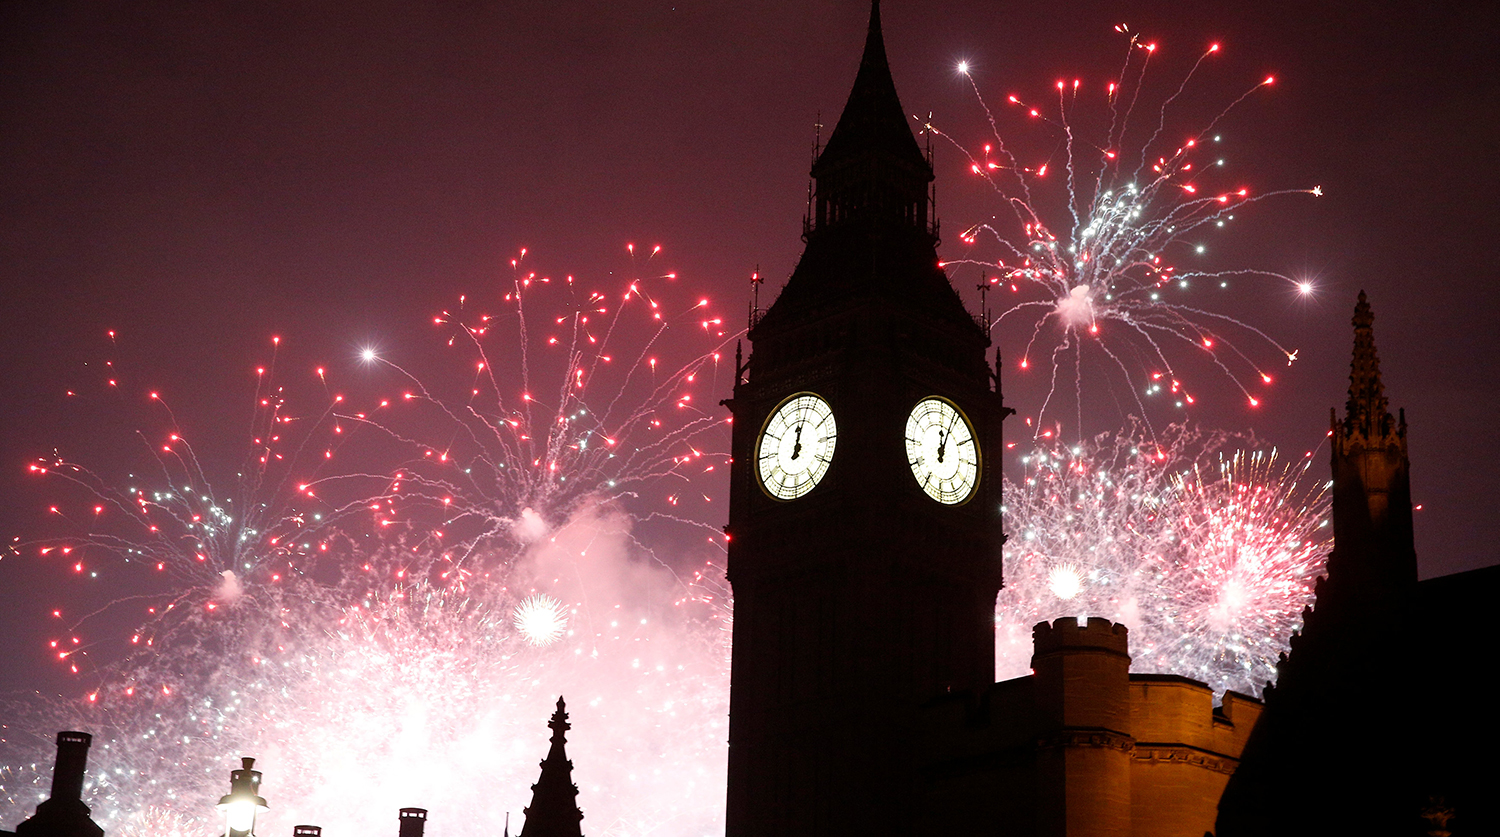 Fireworks explode by the Big Ben clocktower in London